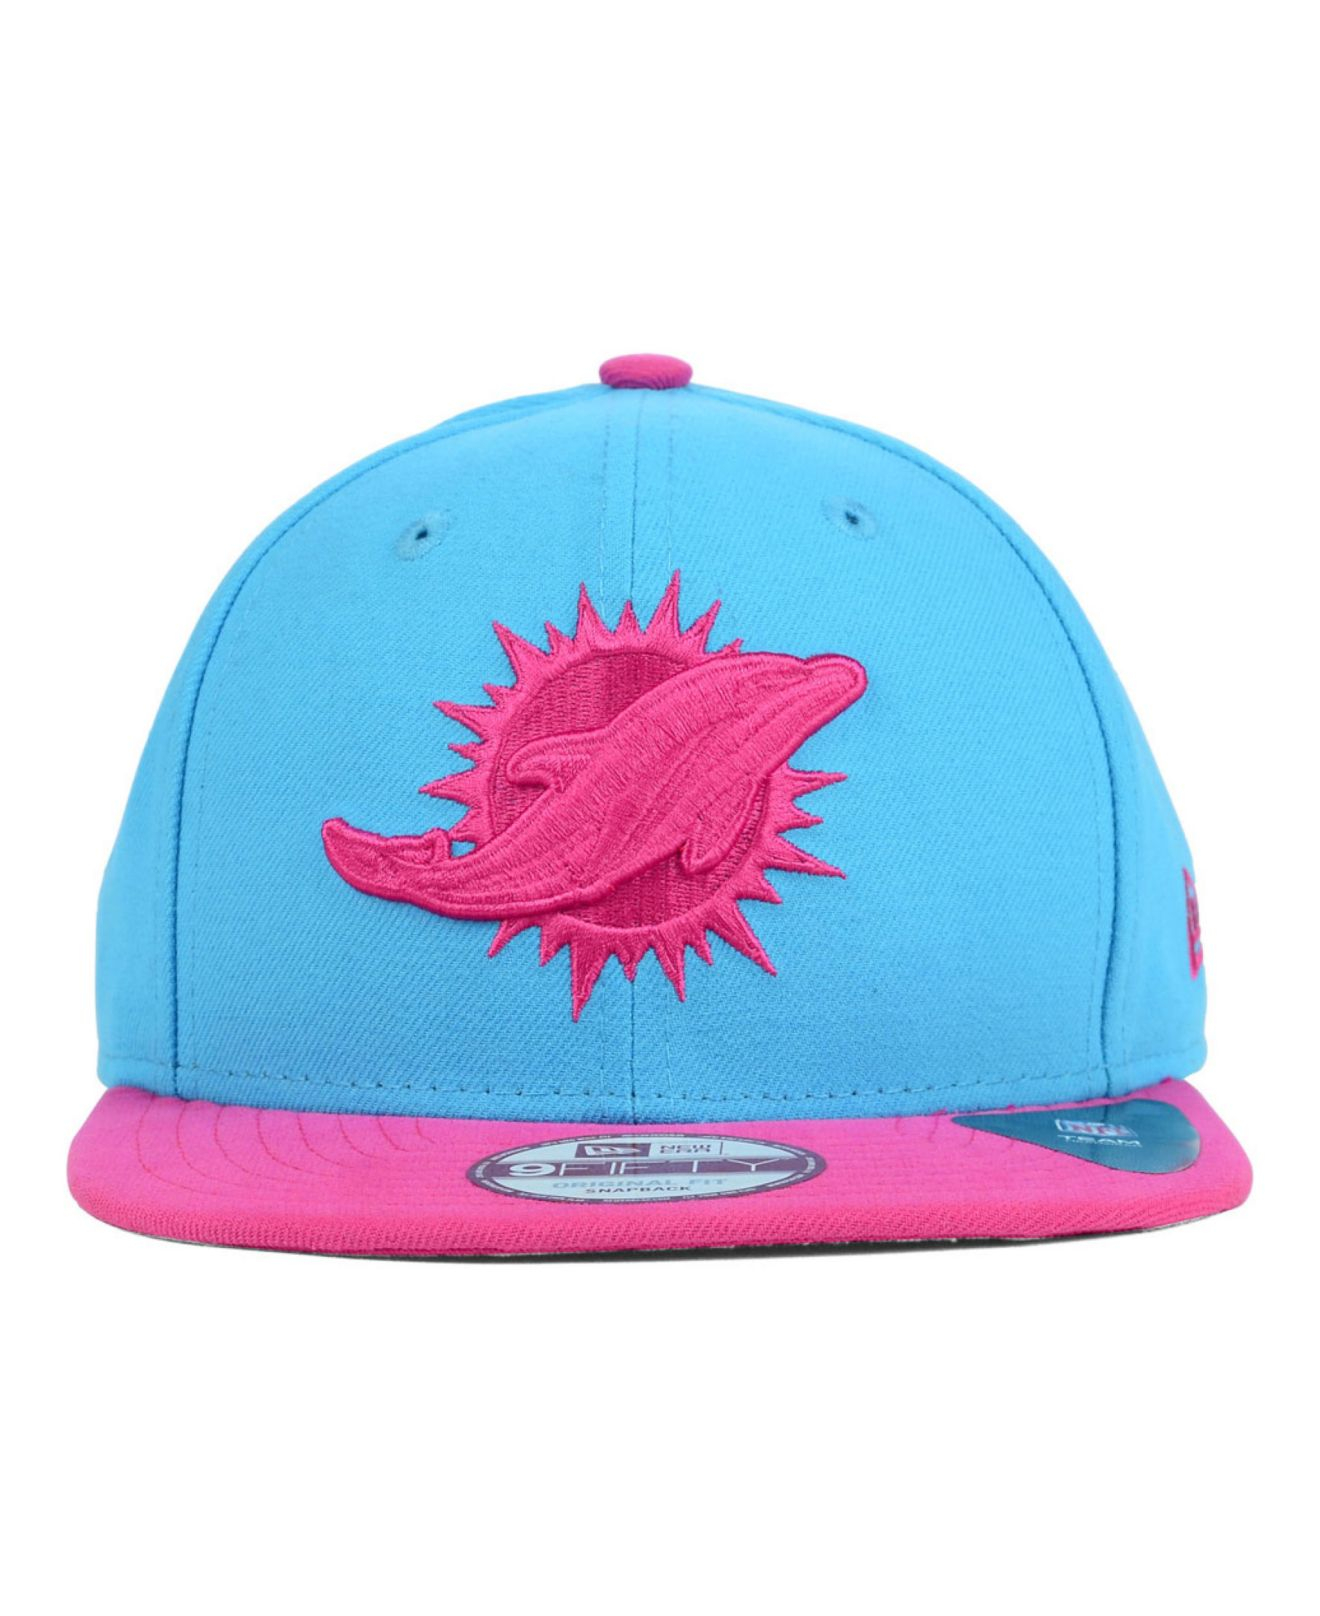 1981a9f388fdff ... spain lyst ktz miami dolphins original fit 9fifty snapback cap in pink  8bd81 14a93